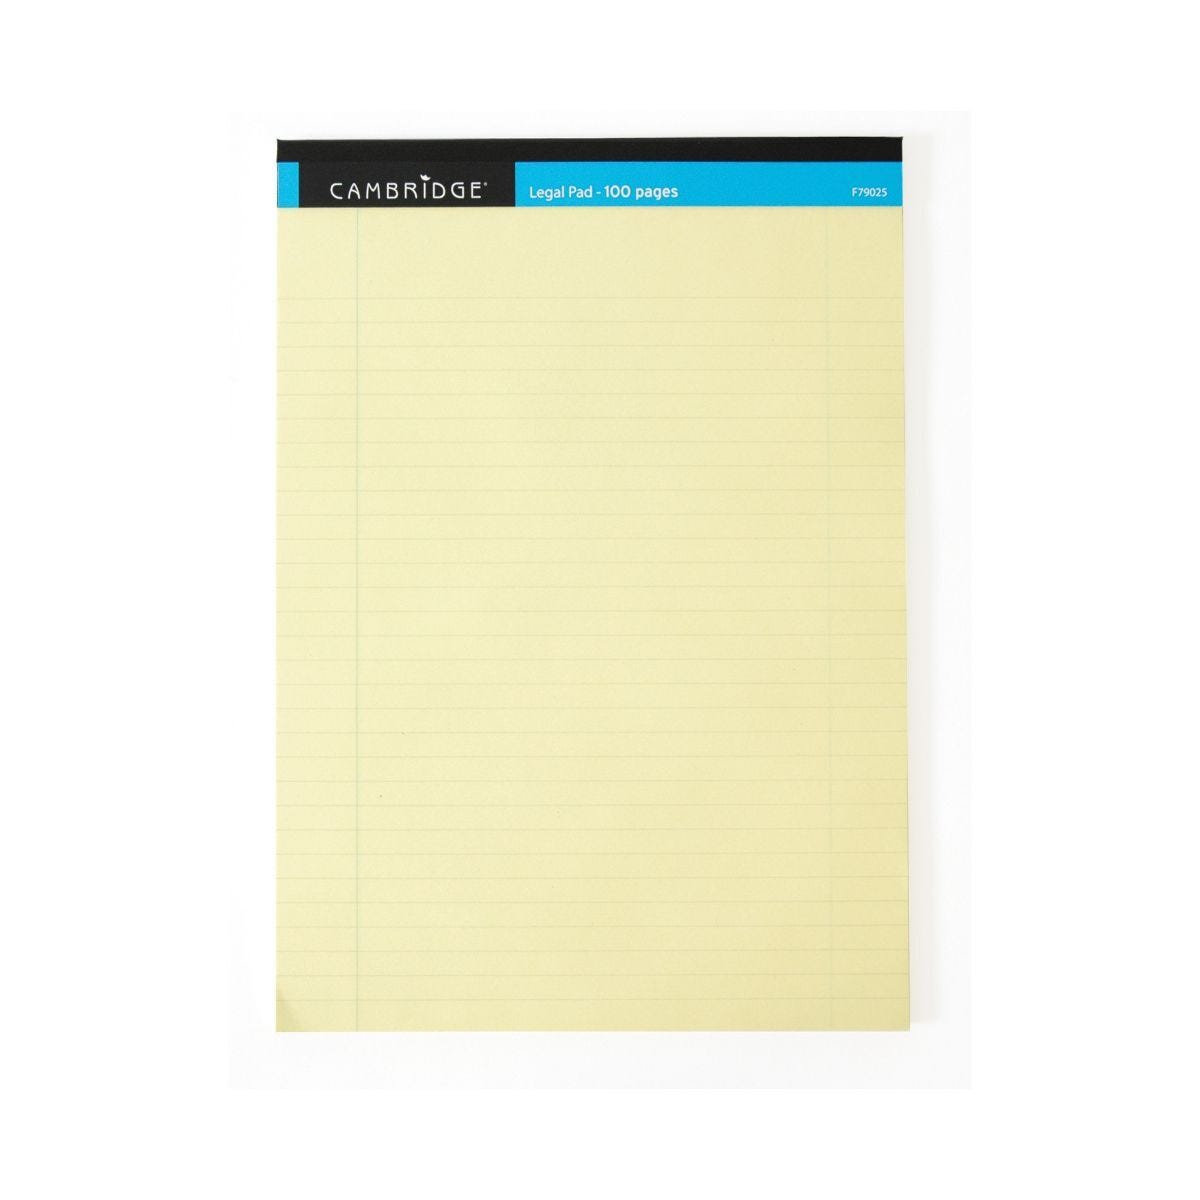 Cambridge Legal Pad Ruled and Margin 100 pages 70gsm Pack of 10